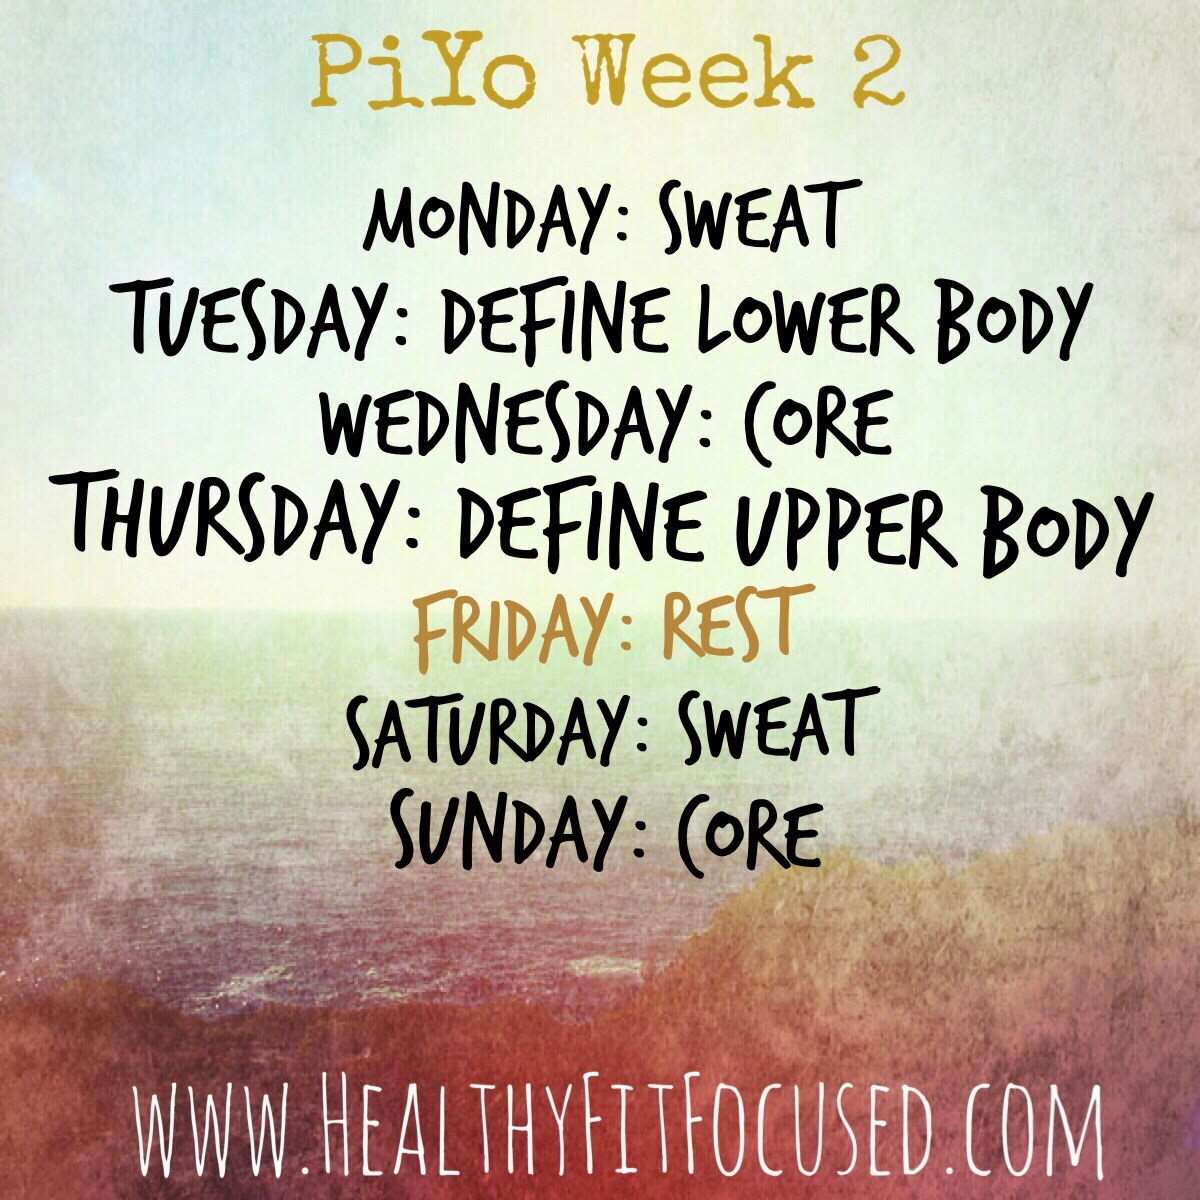 Piyo Week 2 Schedule, women's progress update and meal plan